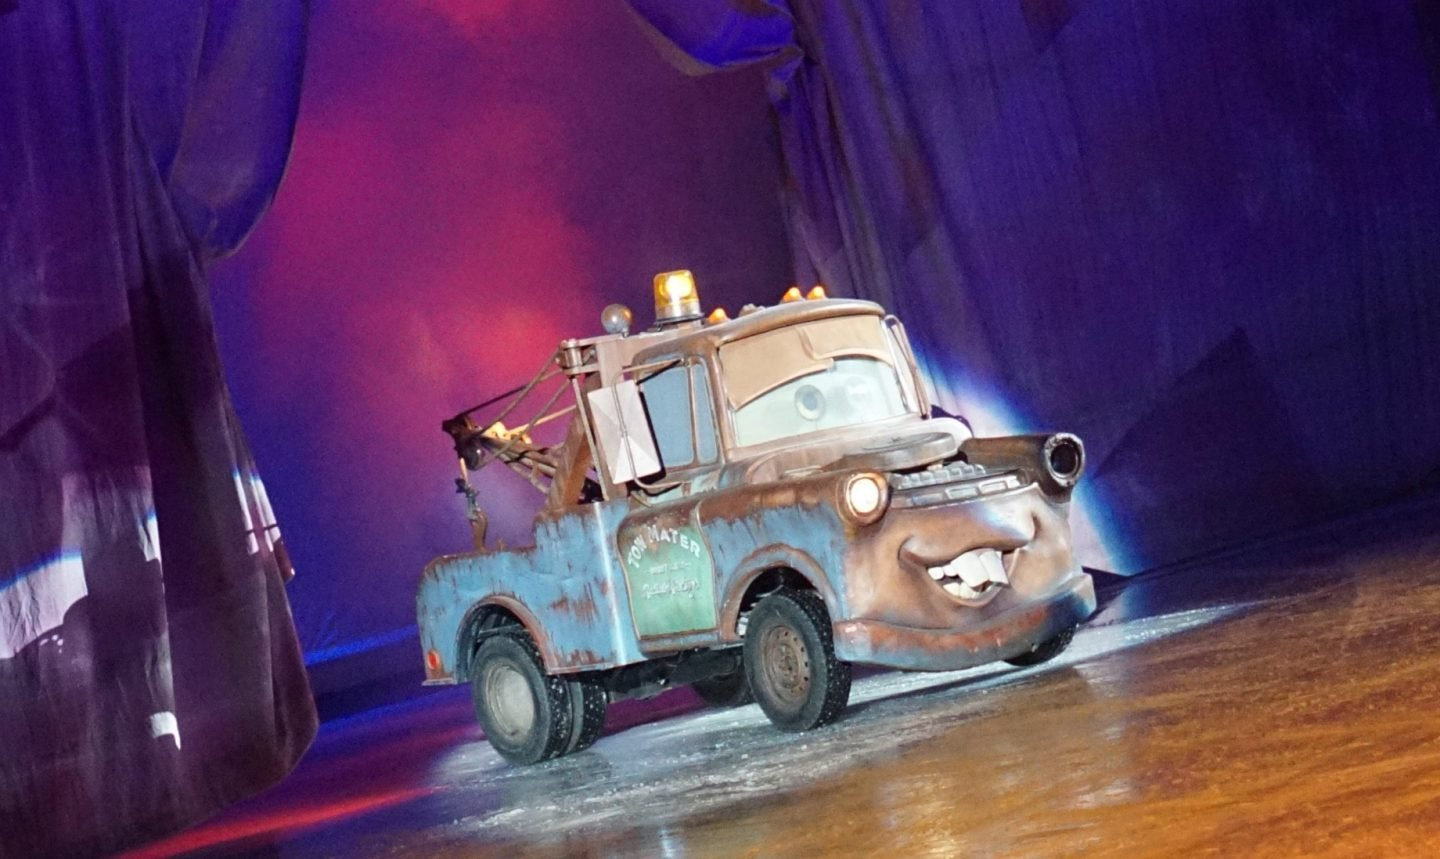 Towmater at Disney on Ice www.extraordinarychaos.com